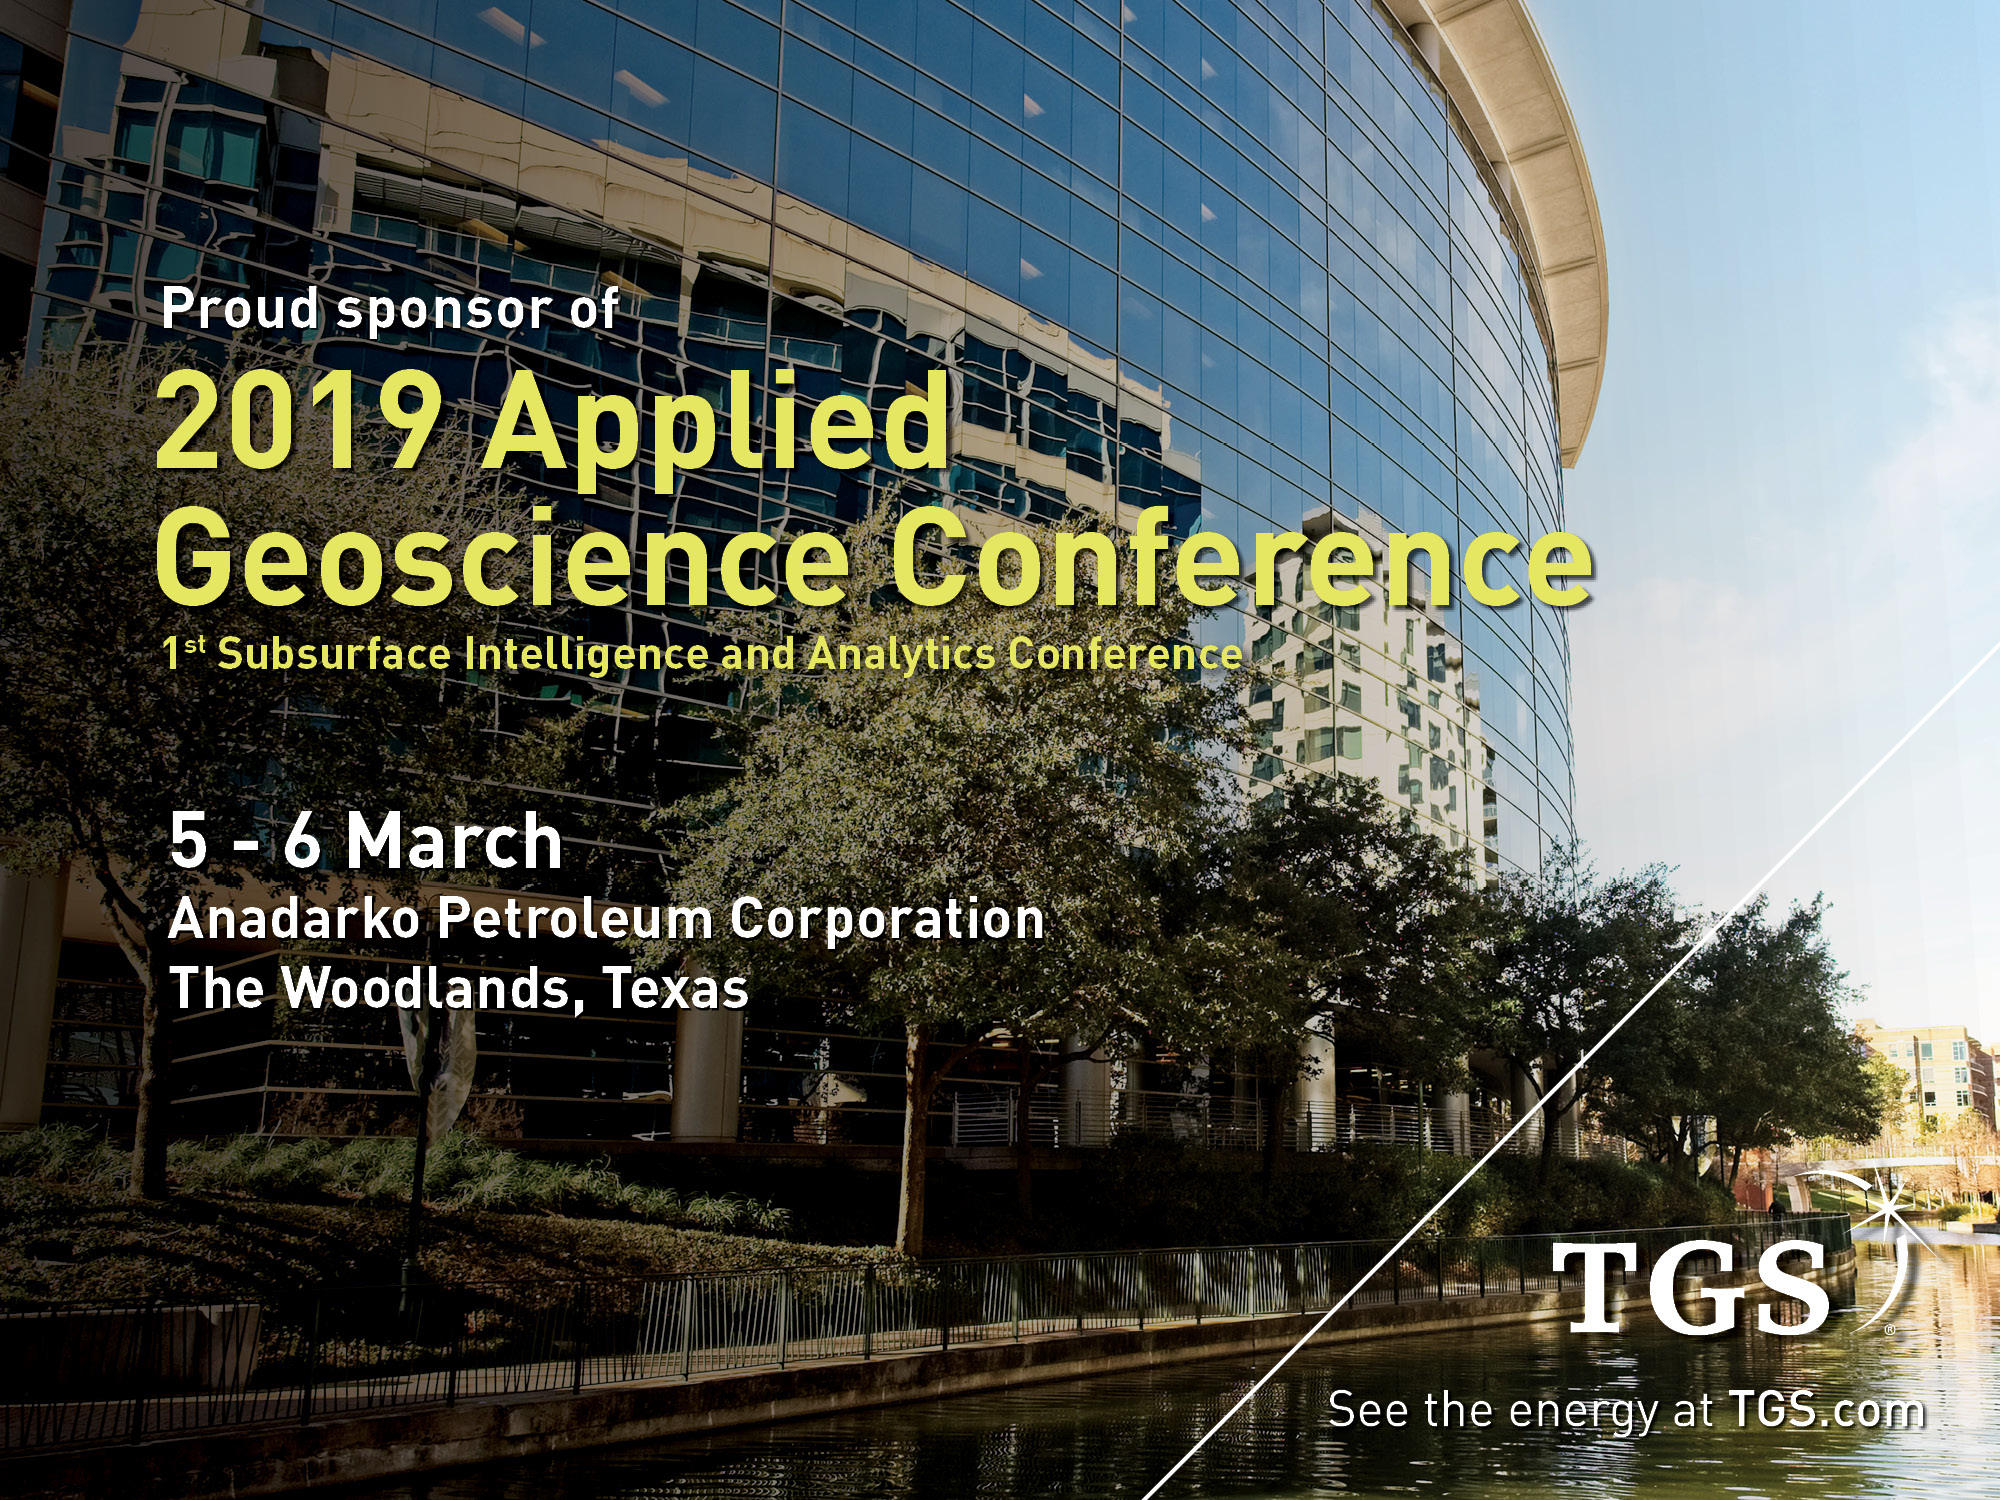 applied-geoscience-conference_480x360px (1)-2